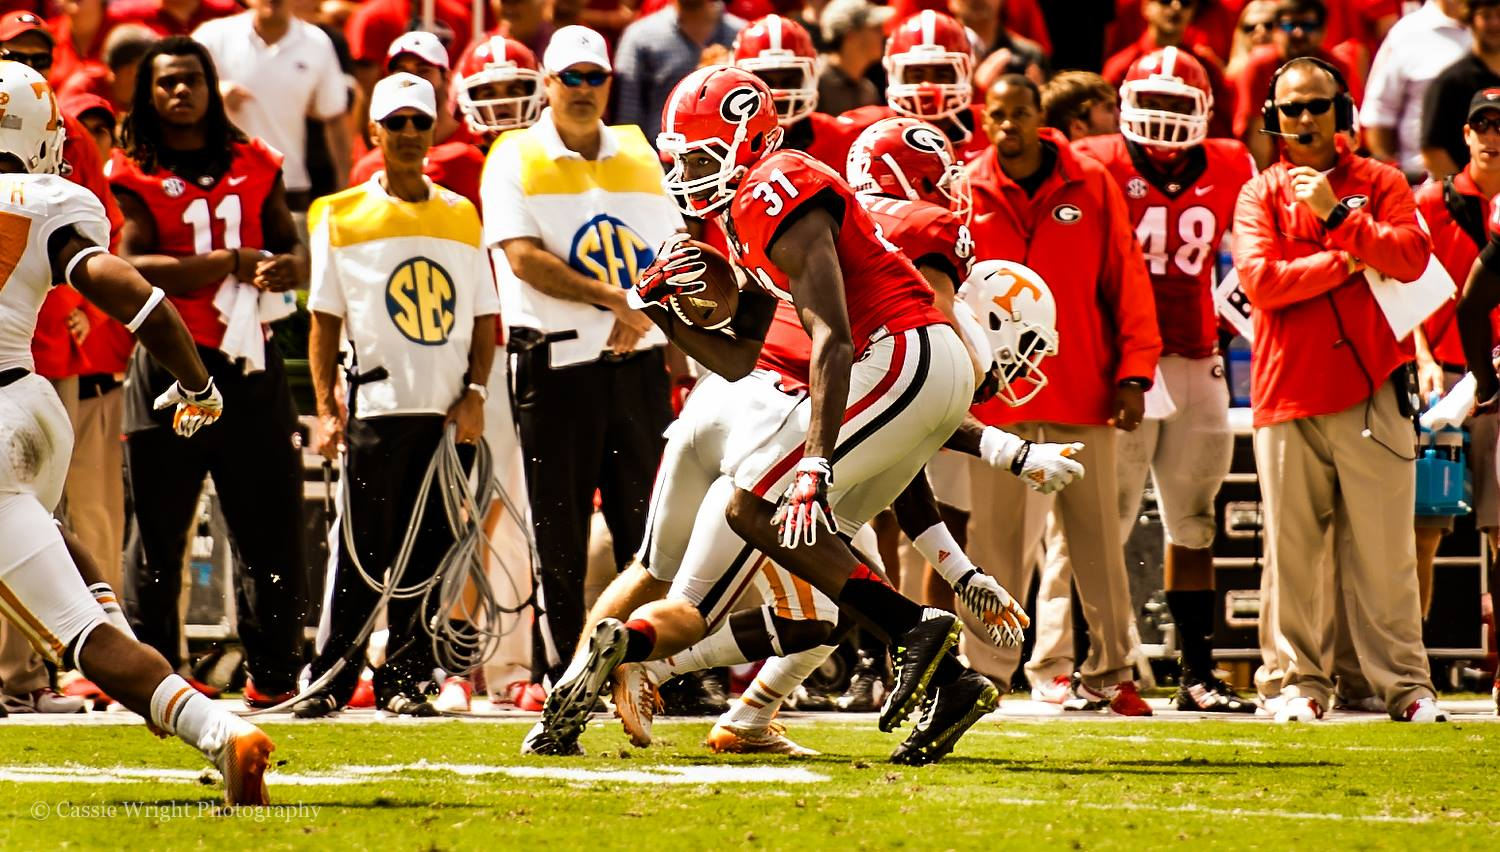 Boiler Room: UGA WR Chris Conley